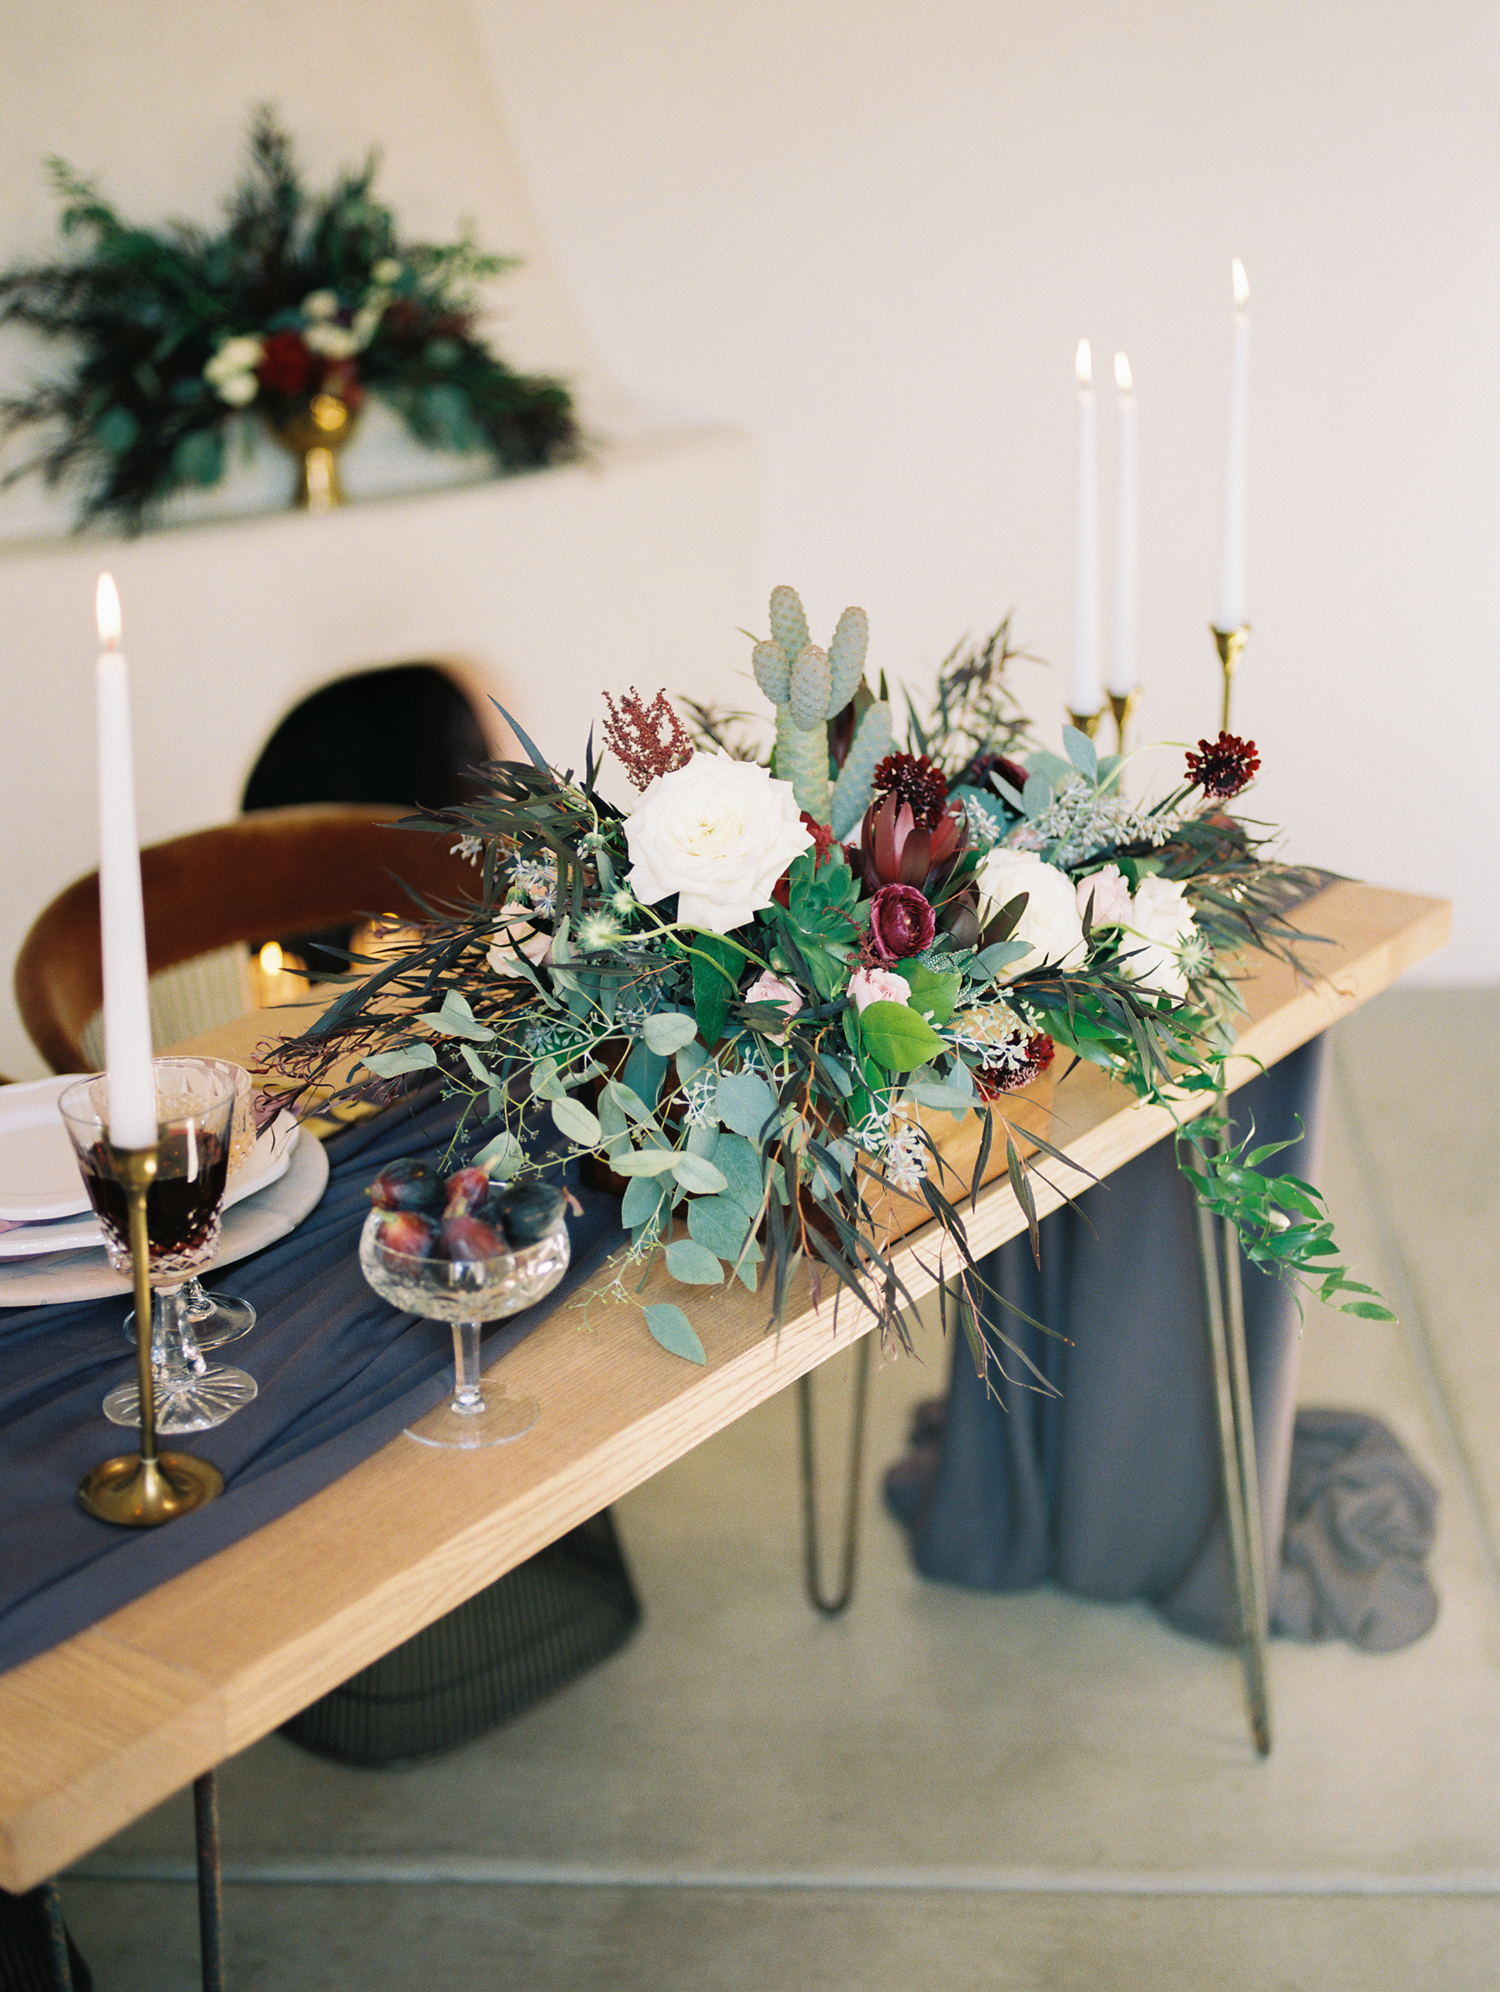 Stunning tablescape captured by Tucson film wedding photographers Betsy & John on Portra 800